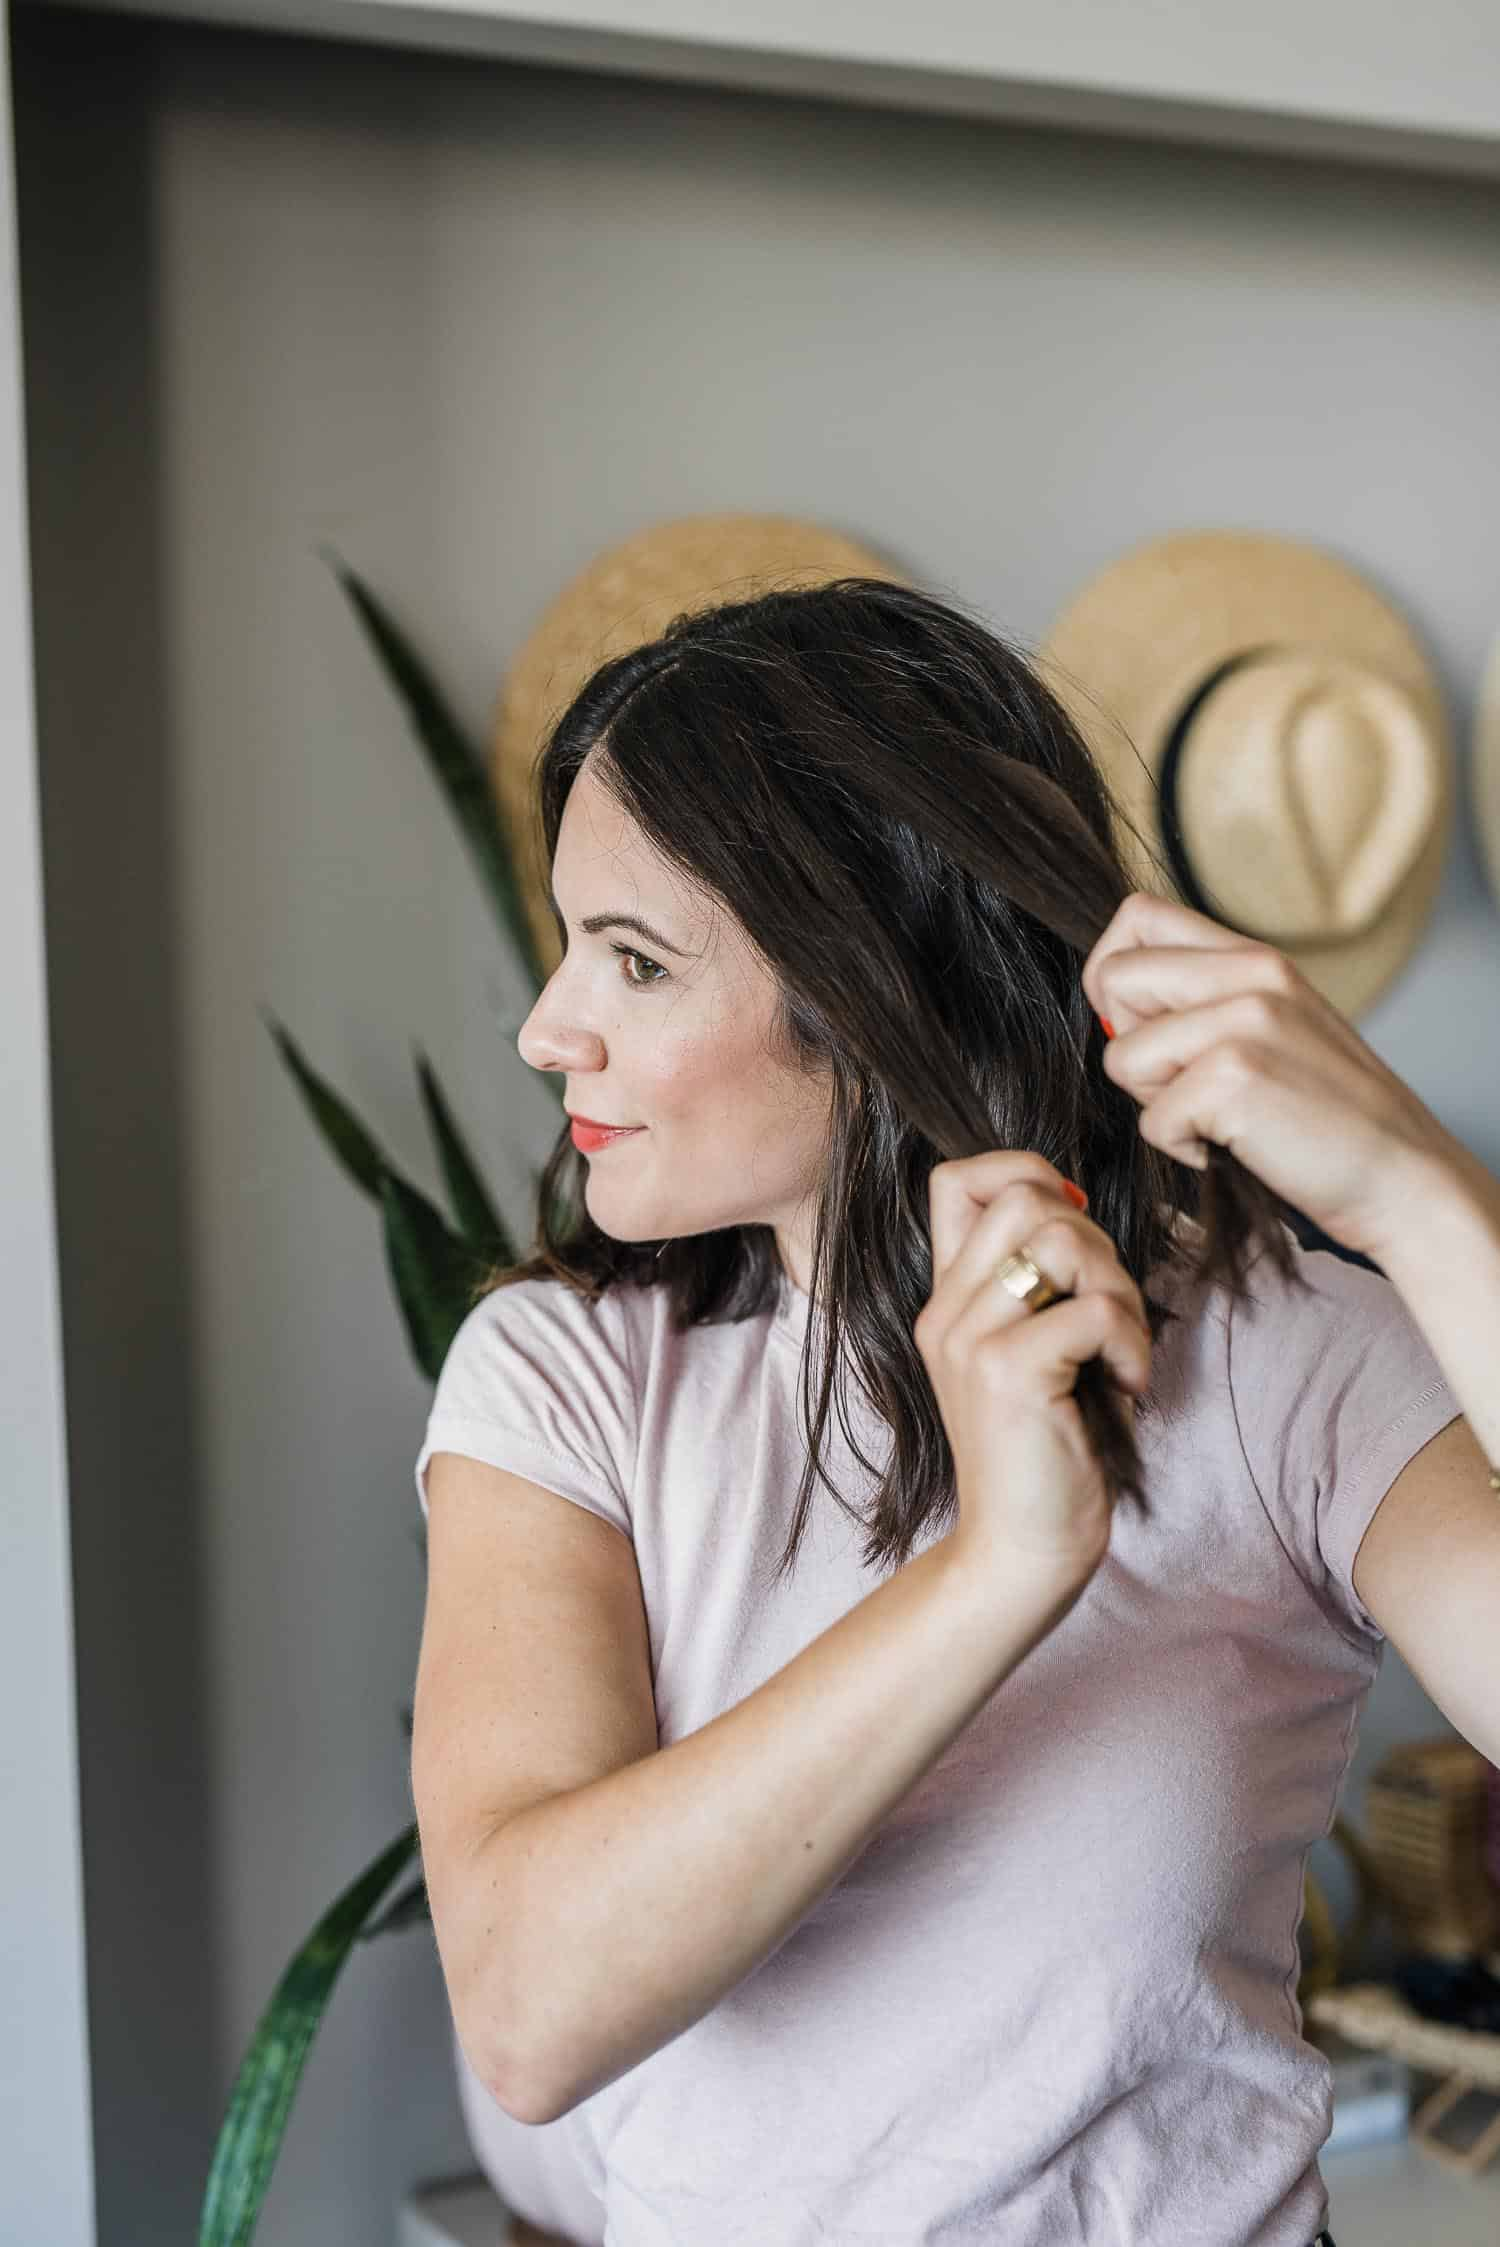 French Rope Braid Tutorial - Step By Step